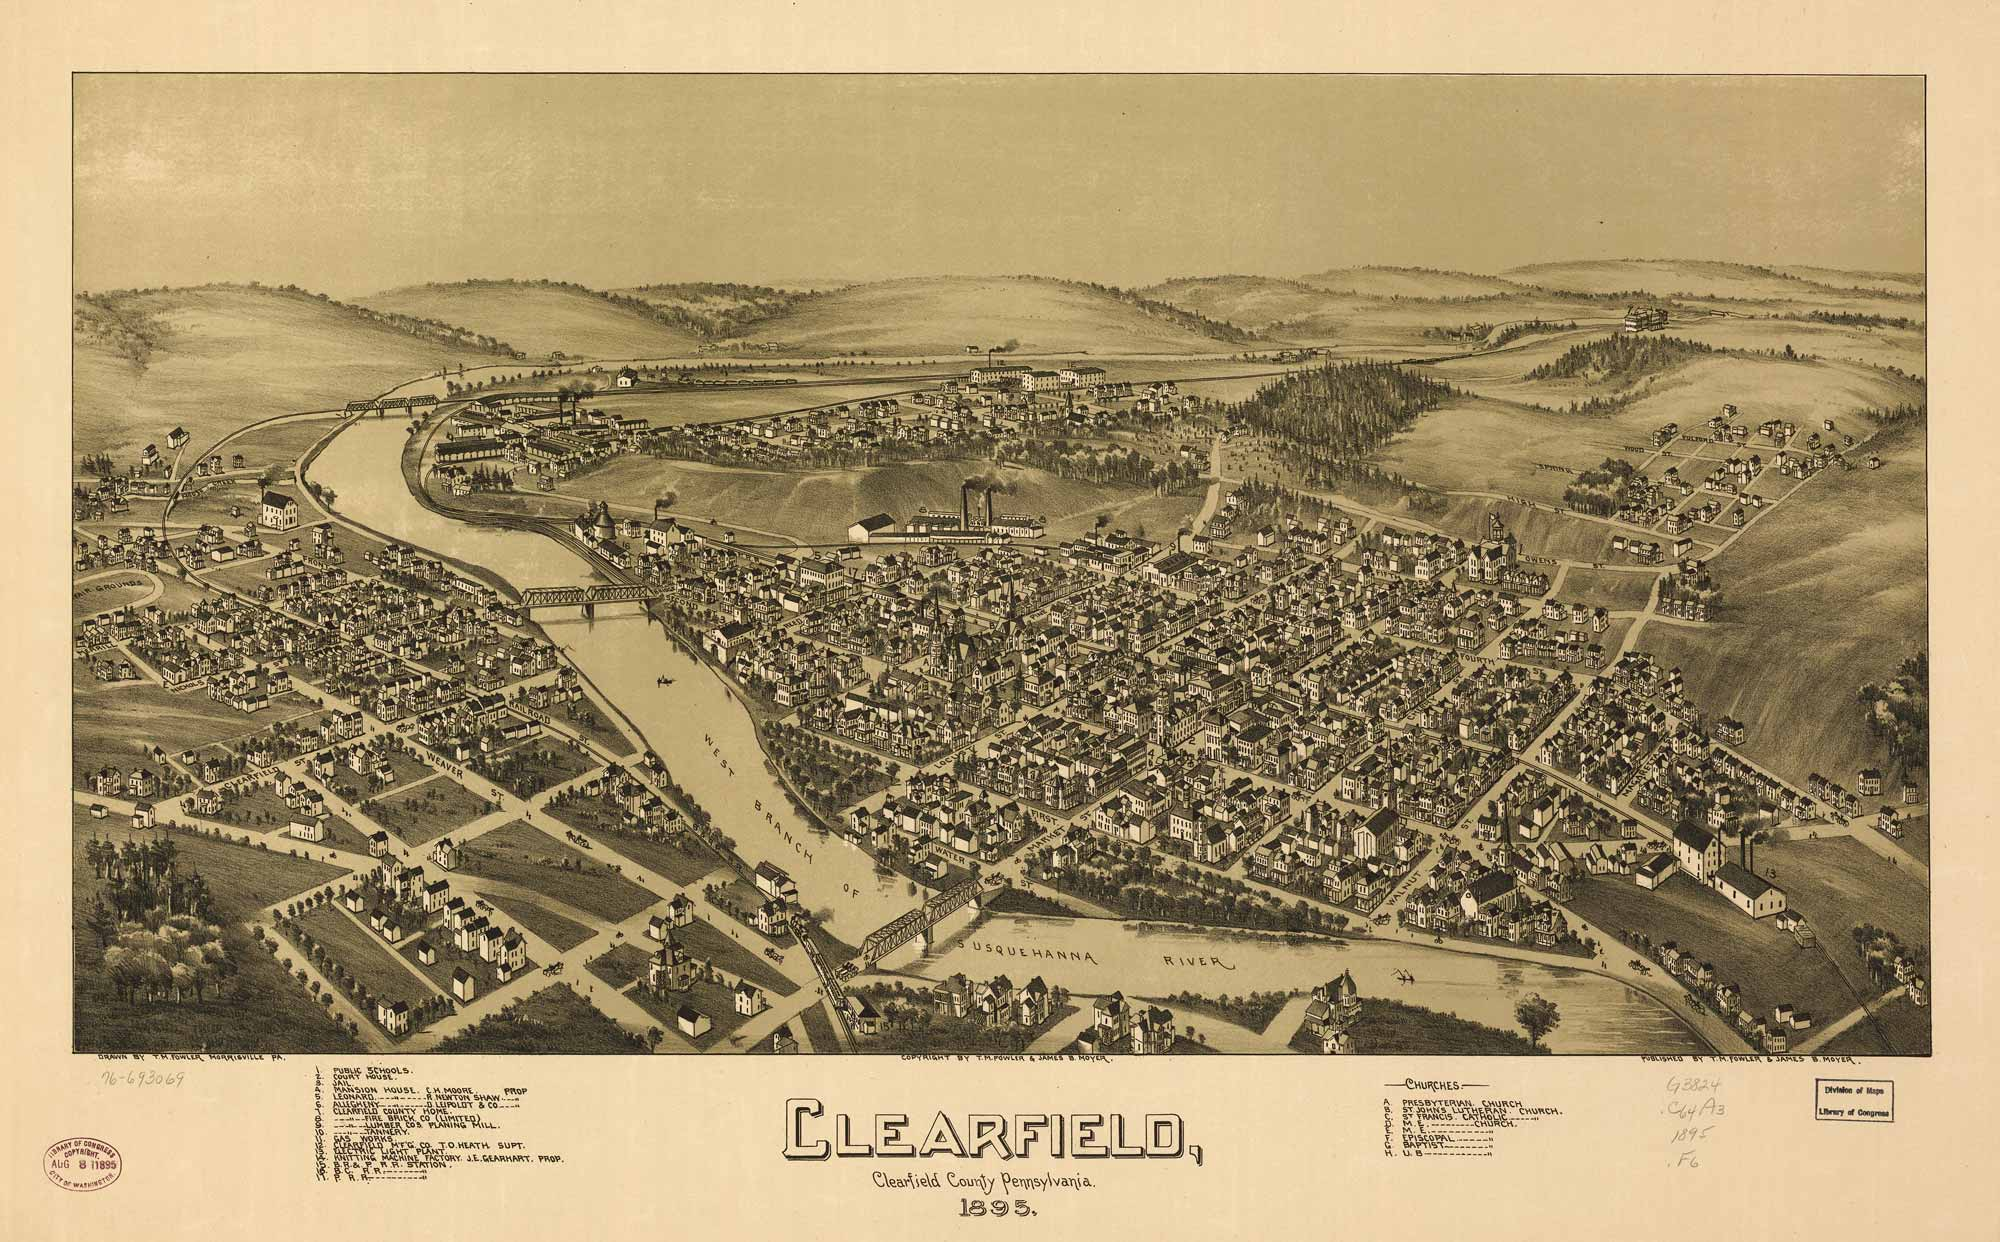 Overview of Clearfield - Illustrated 1895